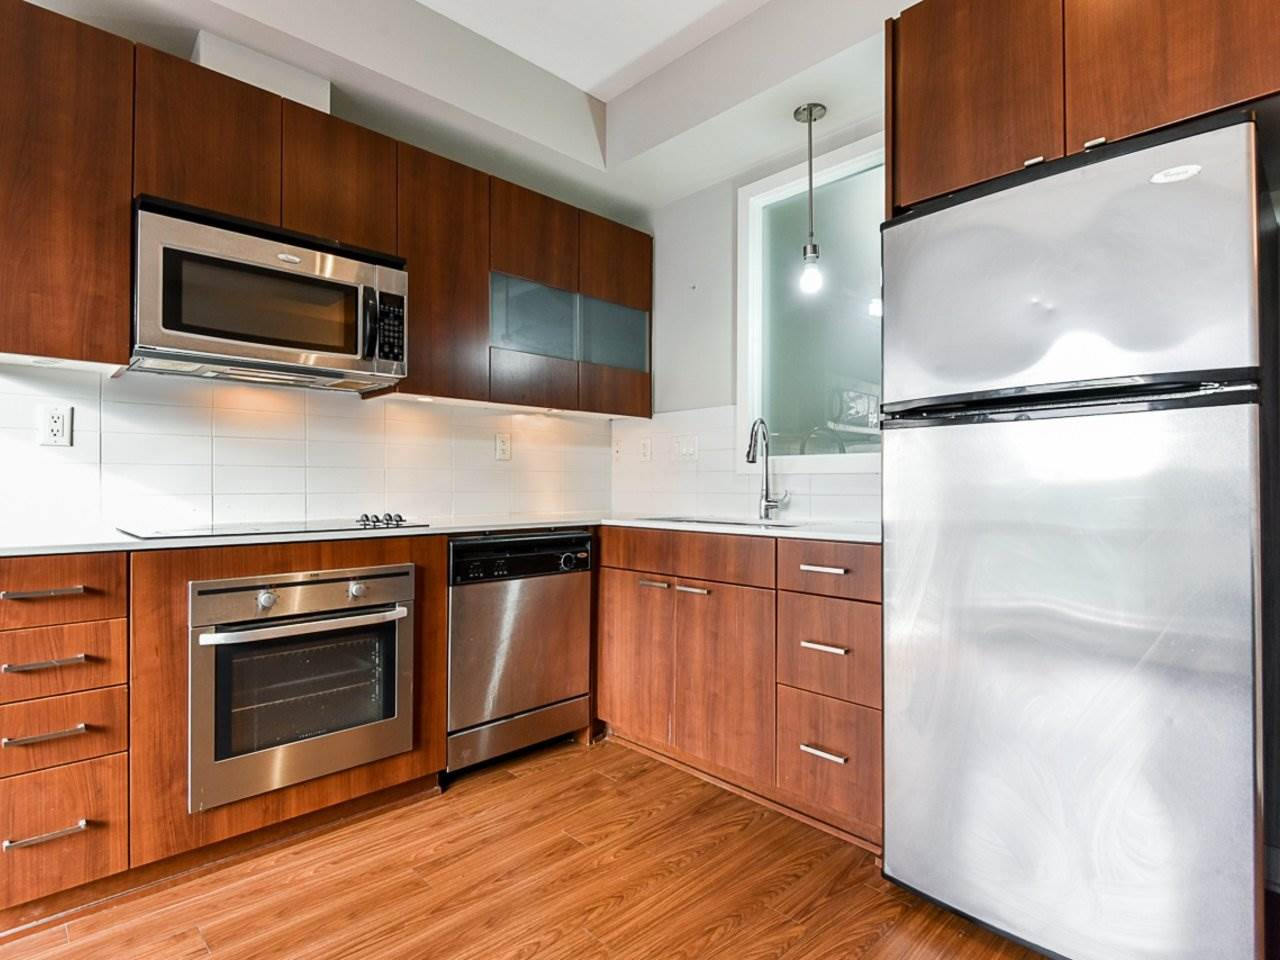 329 13321 102A AVENUE - Whalley Apartment/Condo for sale, 1 Bedroom (R2508611) - #7